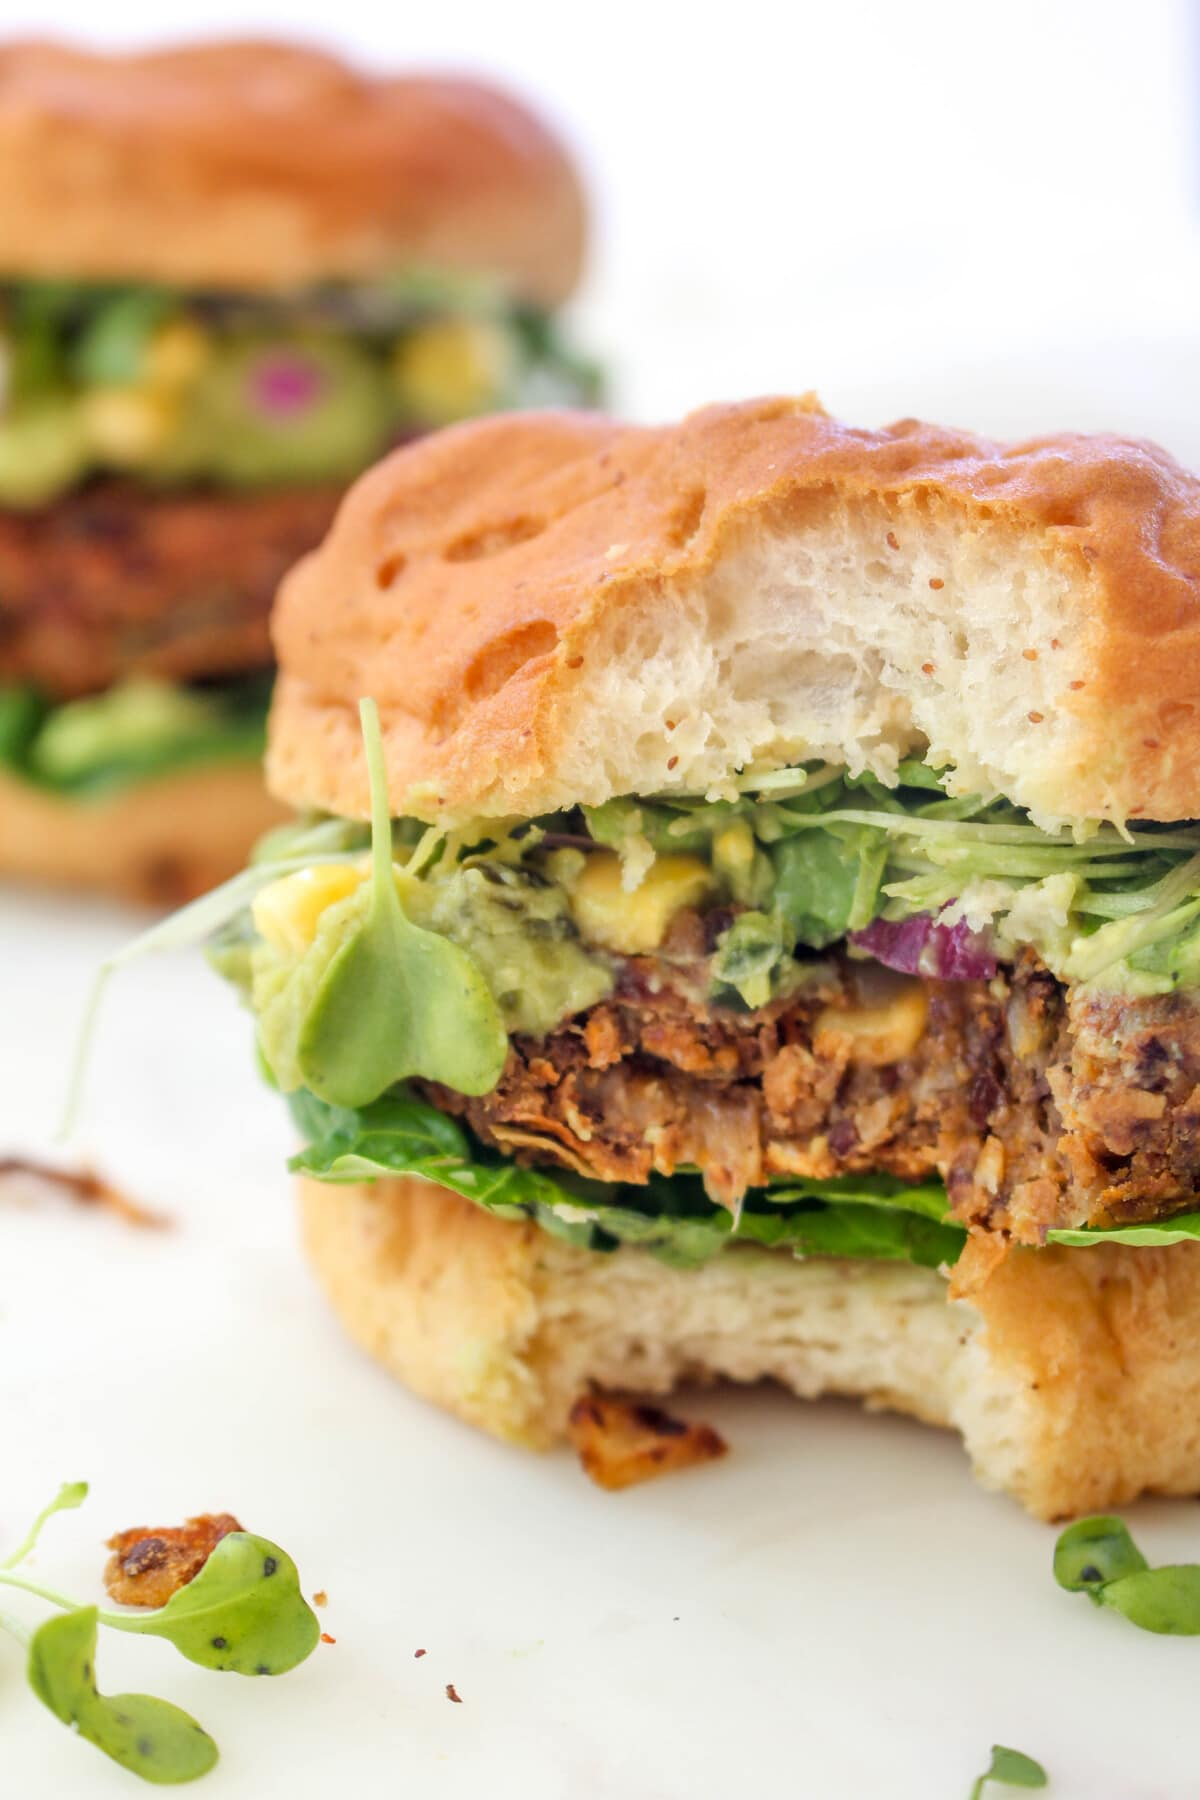 This California Burger is a big juicy vegan burger loaded with guacamole, fresh corn salsa and sprouts. It is lean and clean West Coast cuisine meets decadent burger.